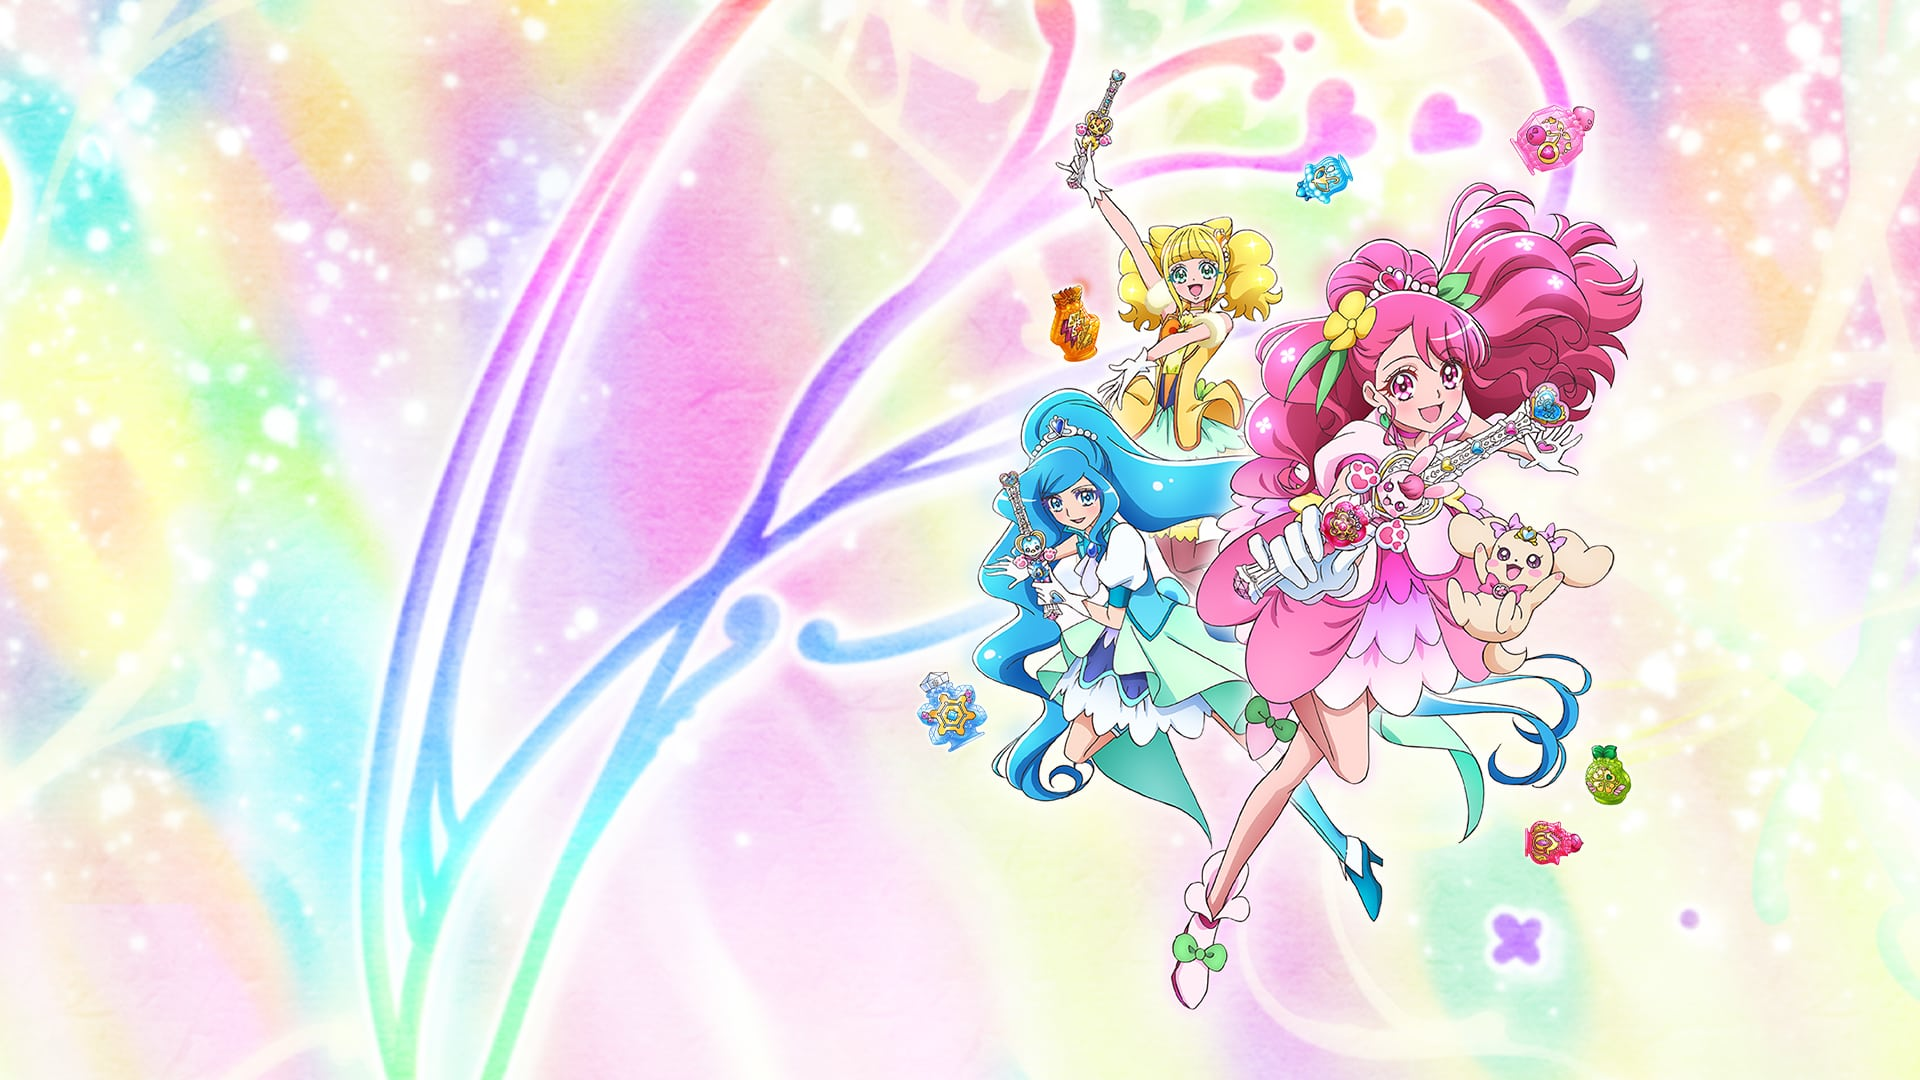 Cover image of Healin' Good Pretty Cure